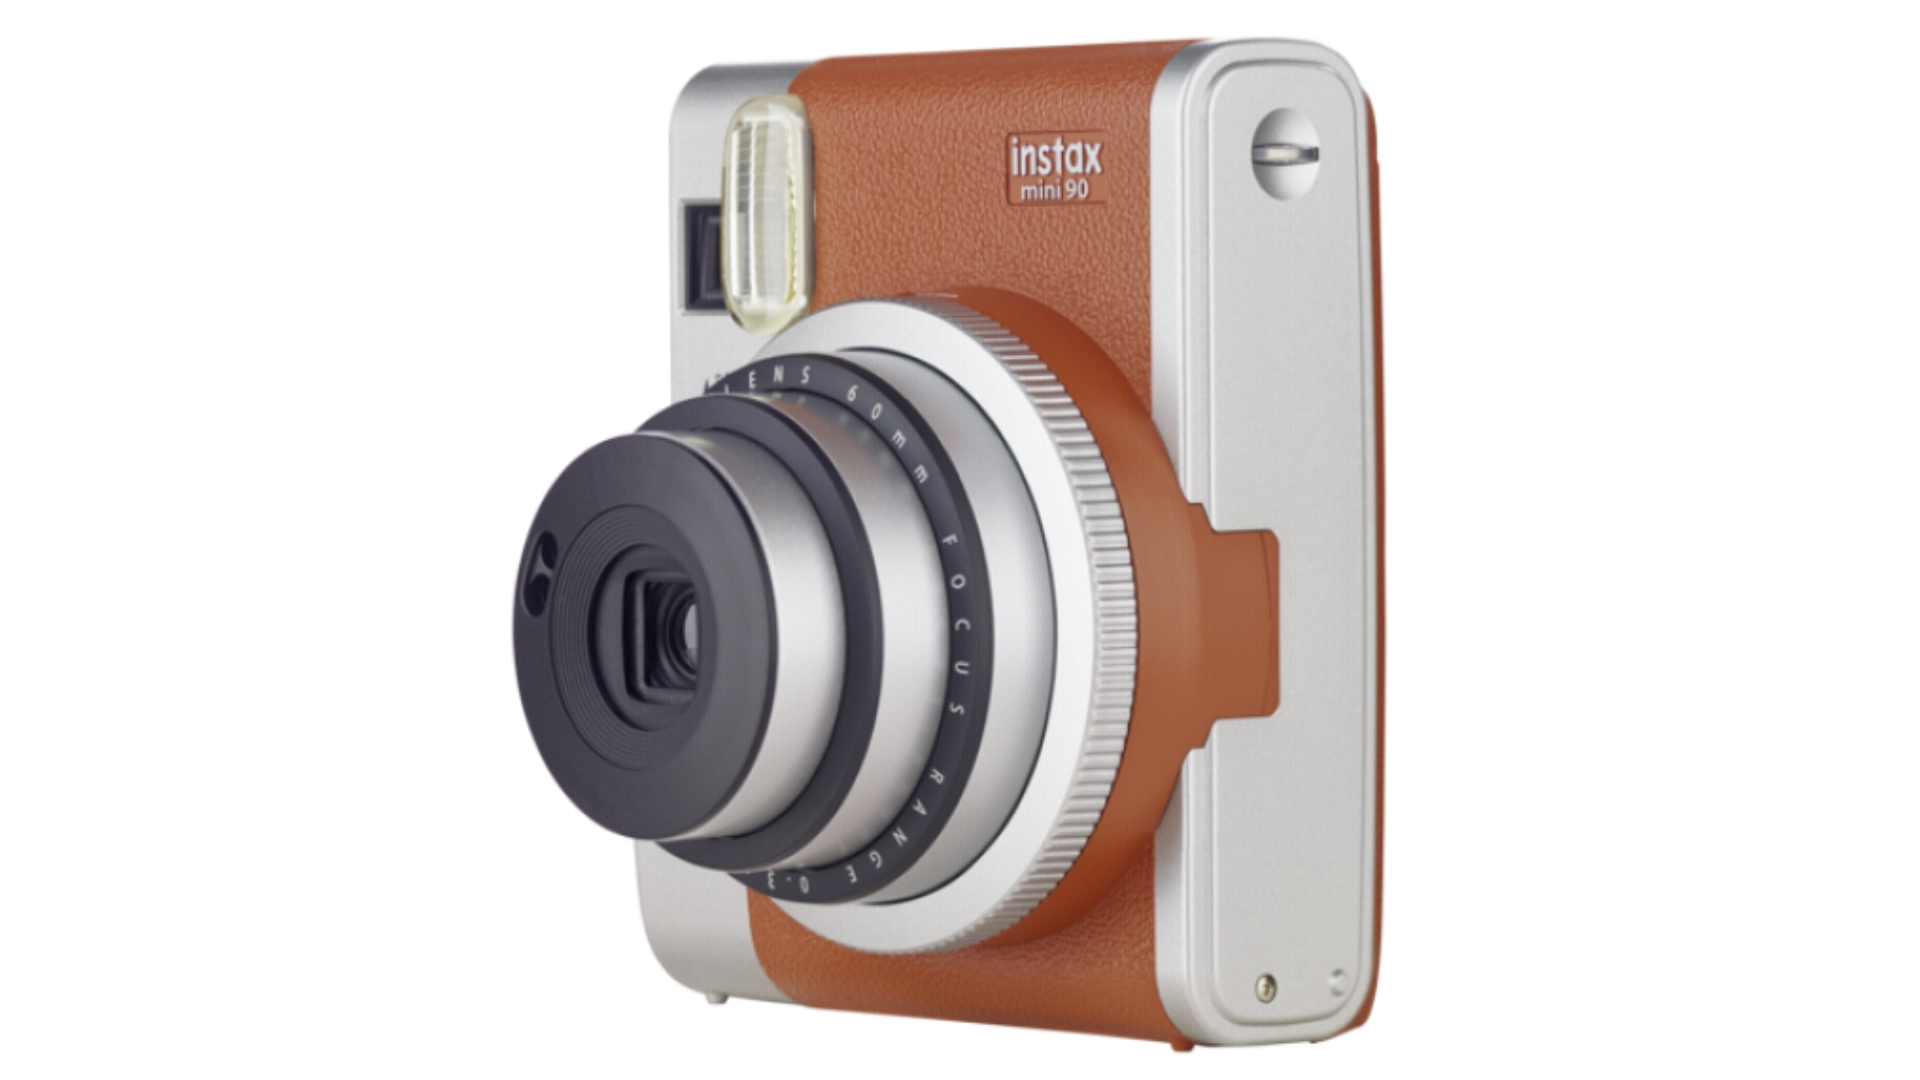 The best Instax Mini prices and deals in May 2020 3